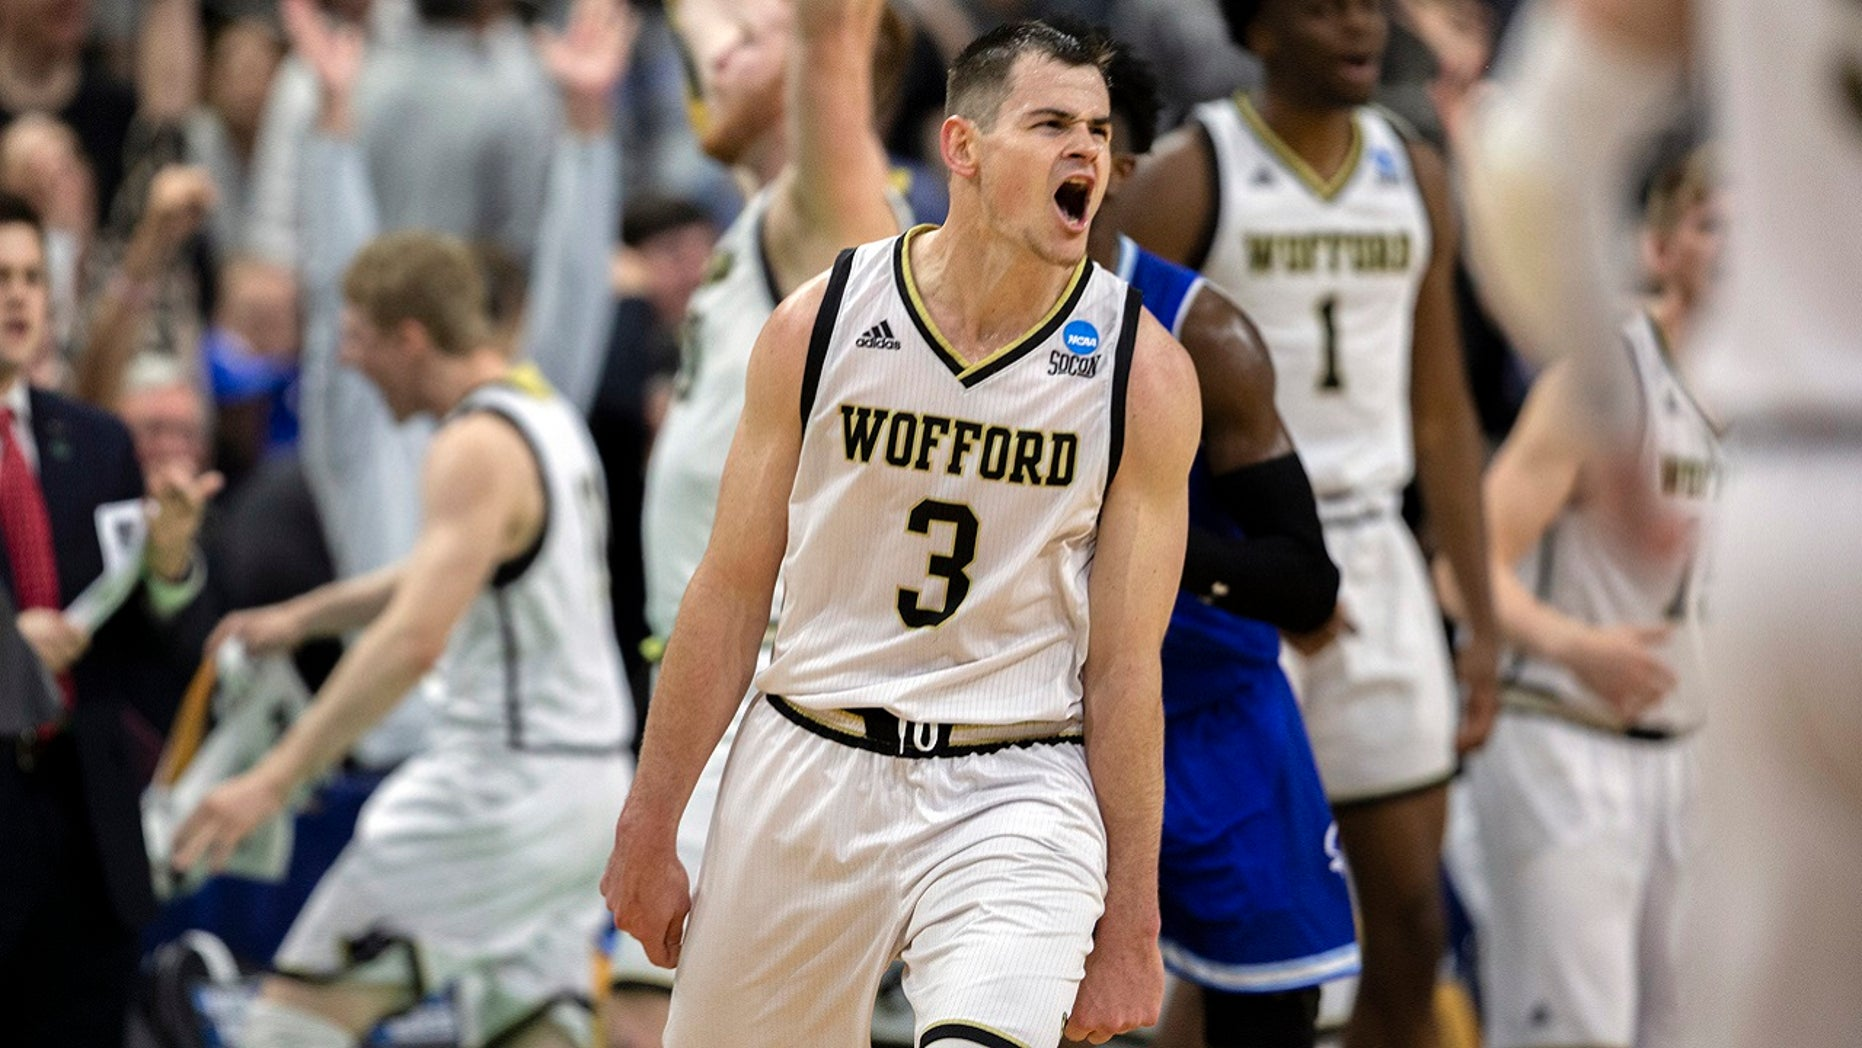 Wofford guard Fletcher Magee (3) celebrates with teammates after hitting a 3-point basket during the final moments of the second half against Seton Hall in a first-round game in the NCAA men's college basketball tournament in Jacksonville, Fla. Thursday, March 21, 2019.